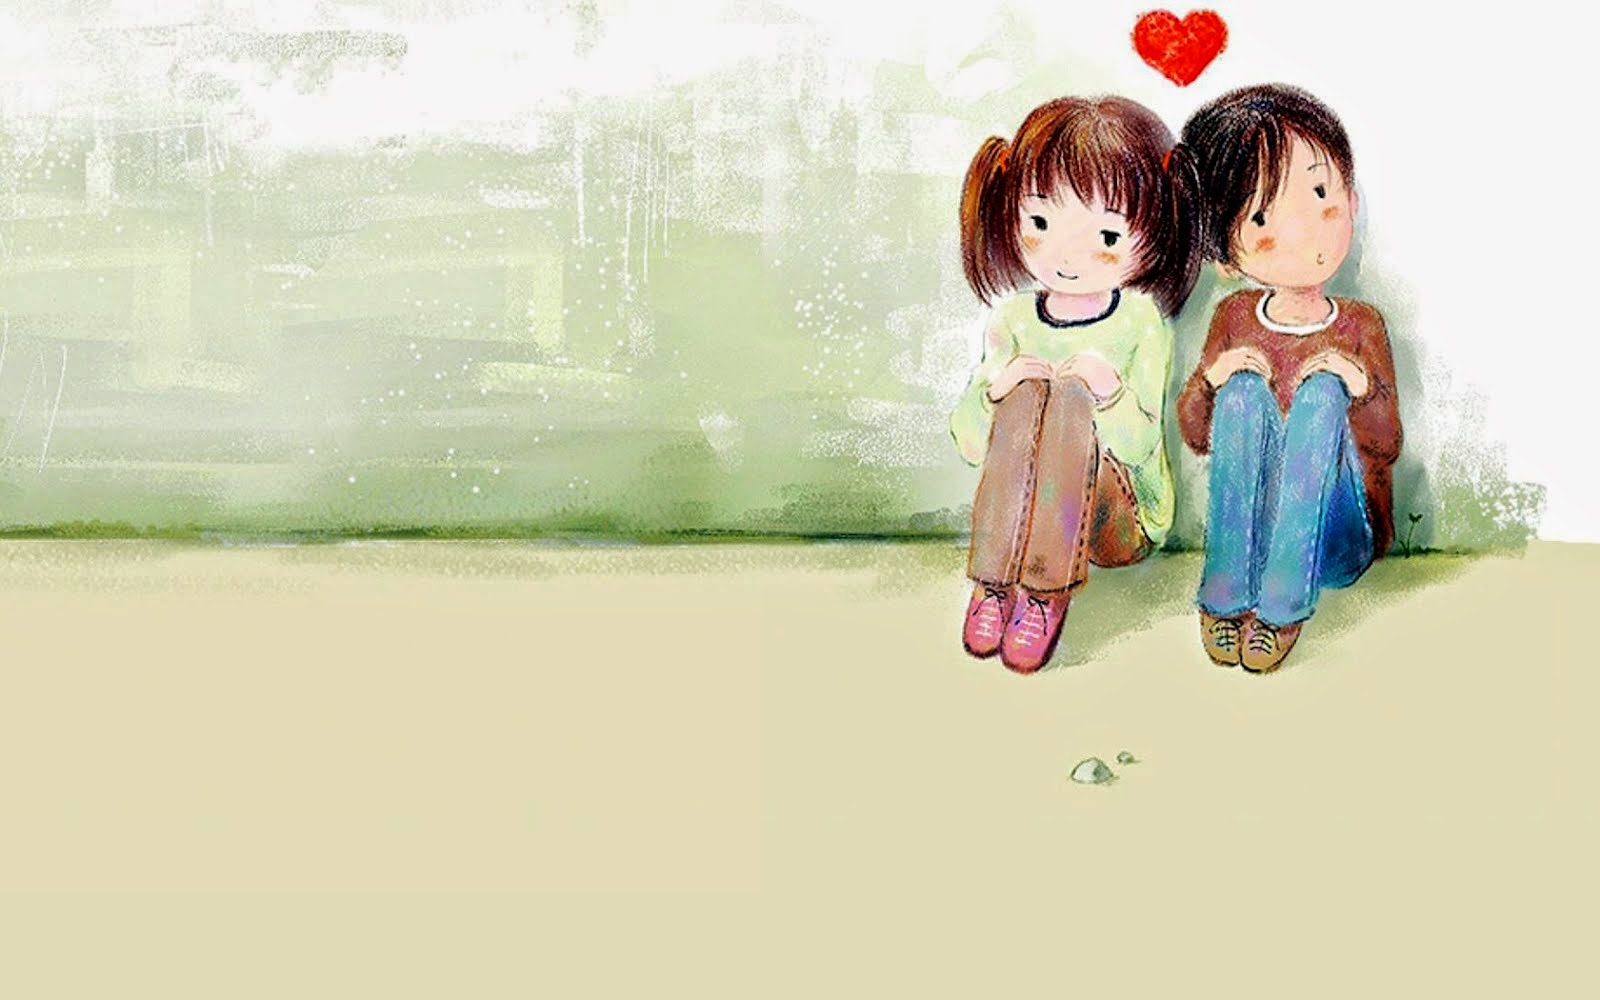 cute Little Love couple Hd Wallpaper : cute Little cartoon couple In Love HD Wallpaper Best Love HD Wallpapers